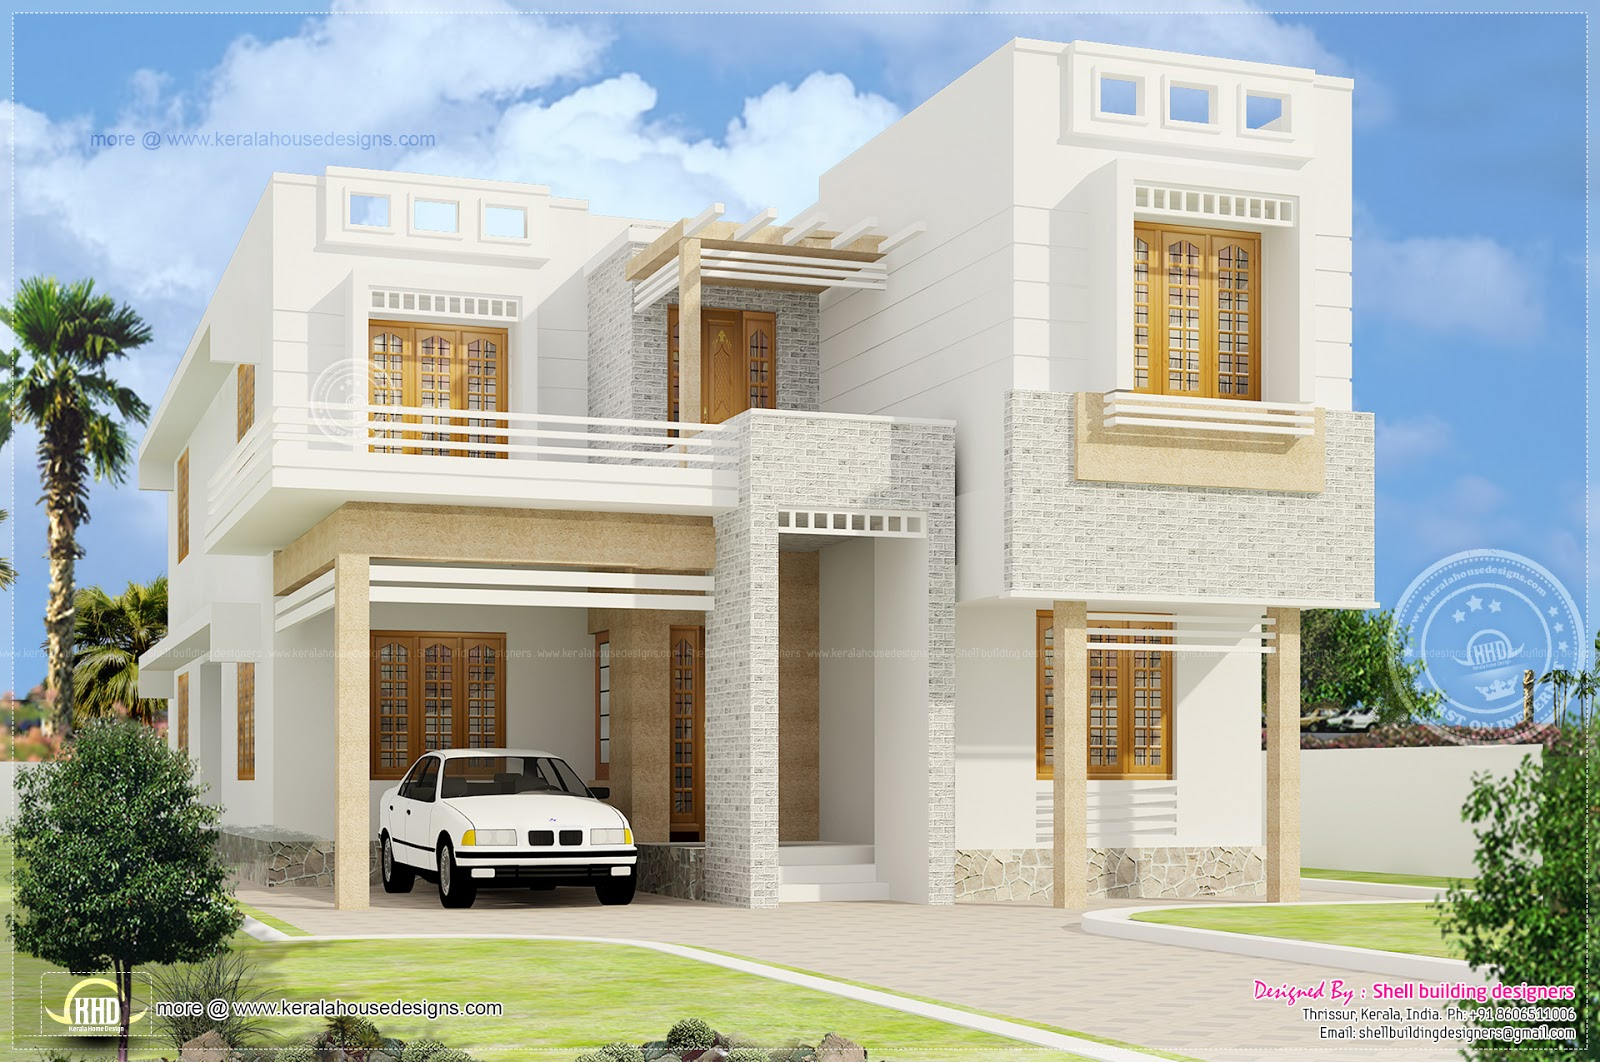 Beautiful 4 bedroom house exterior elevation kerala home design and floor plans for Beautiful home entrance design